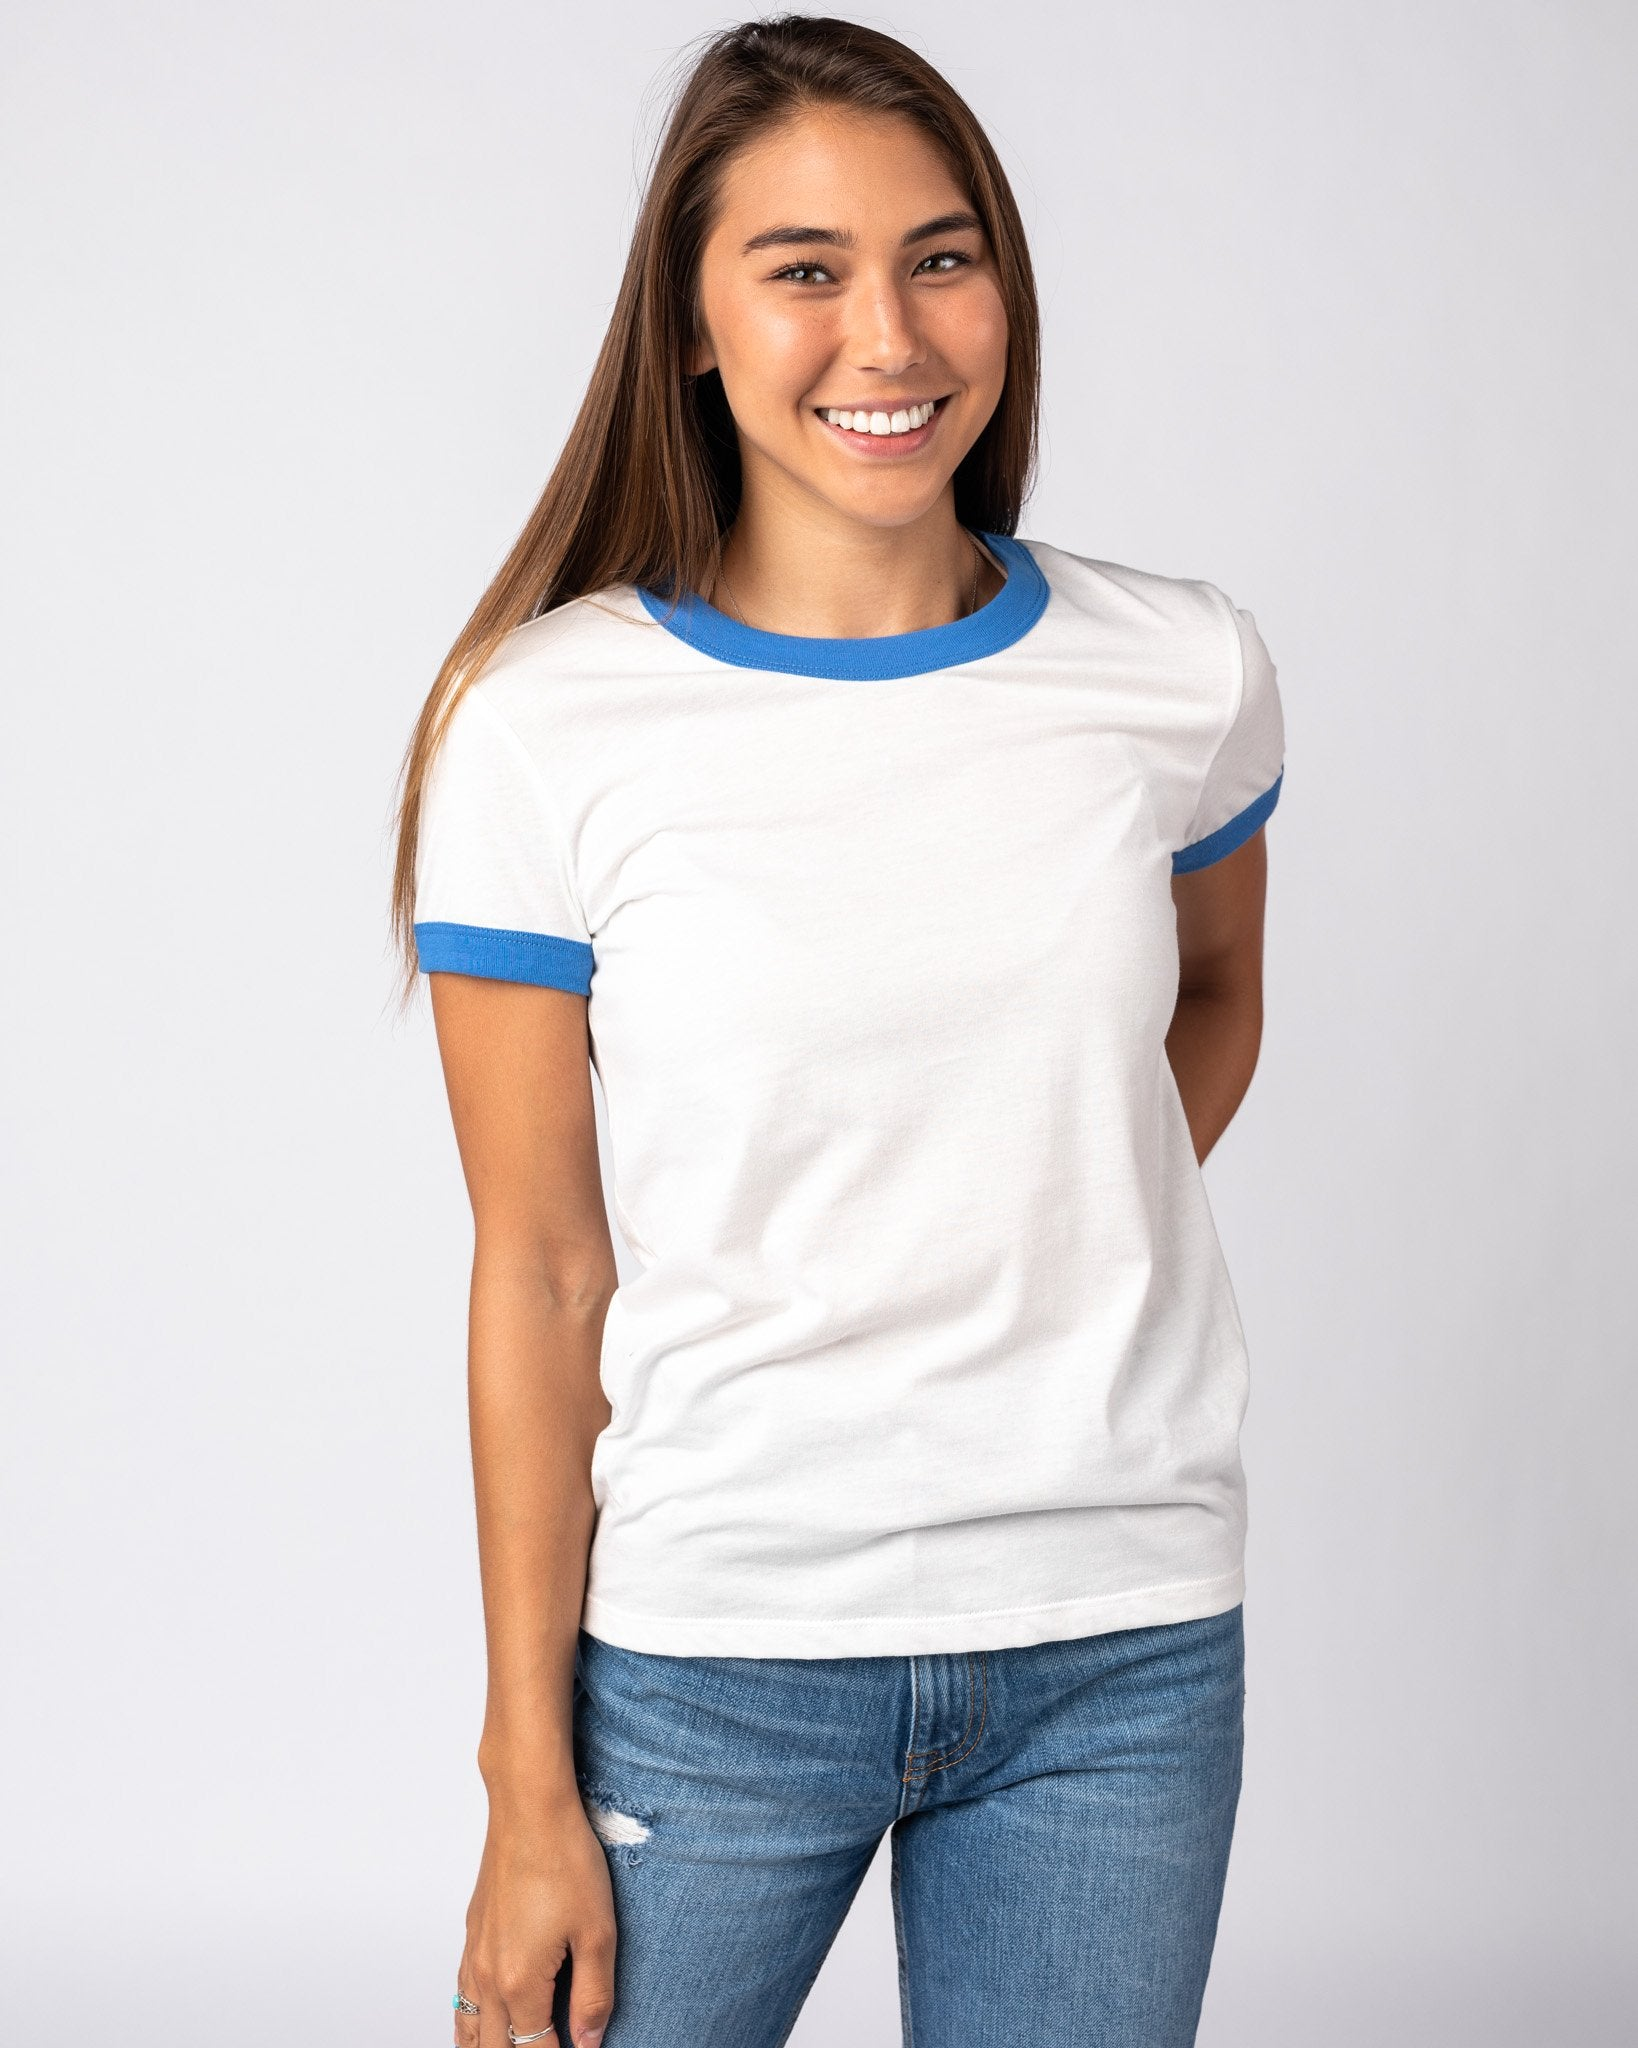 Women's White & Blue Essentials Collection Vintage Ringer T-Shirt Front